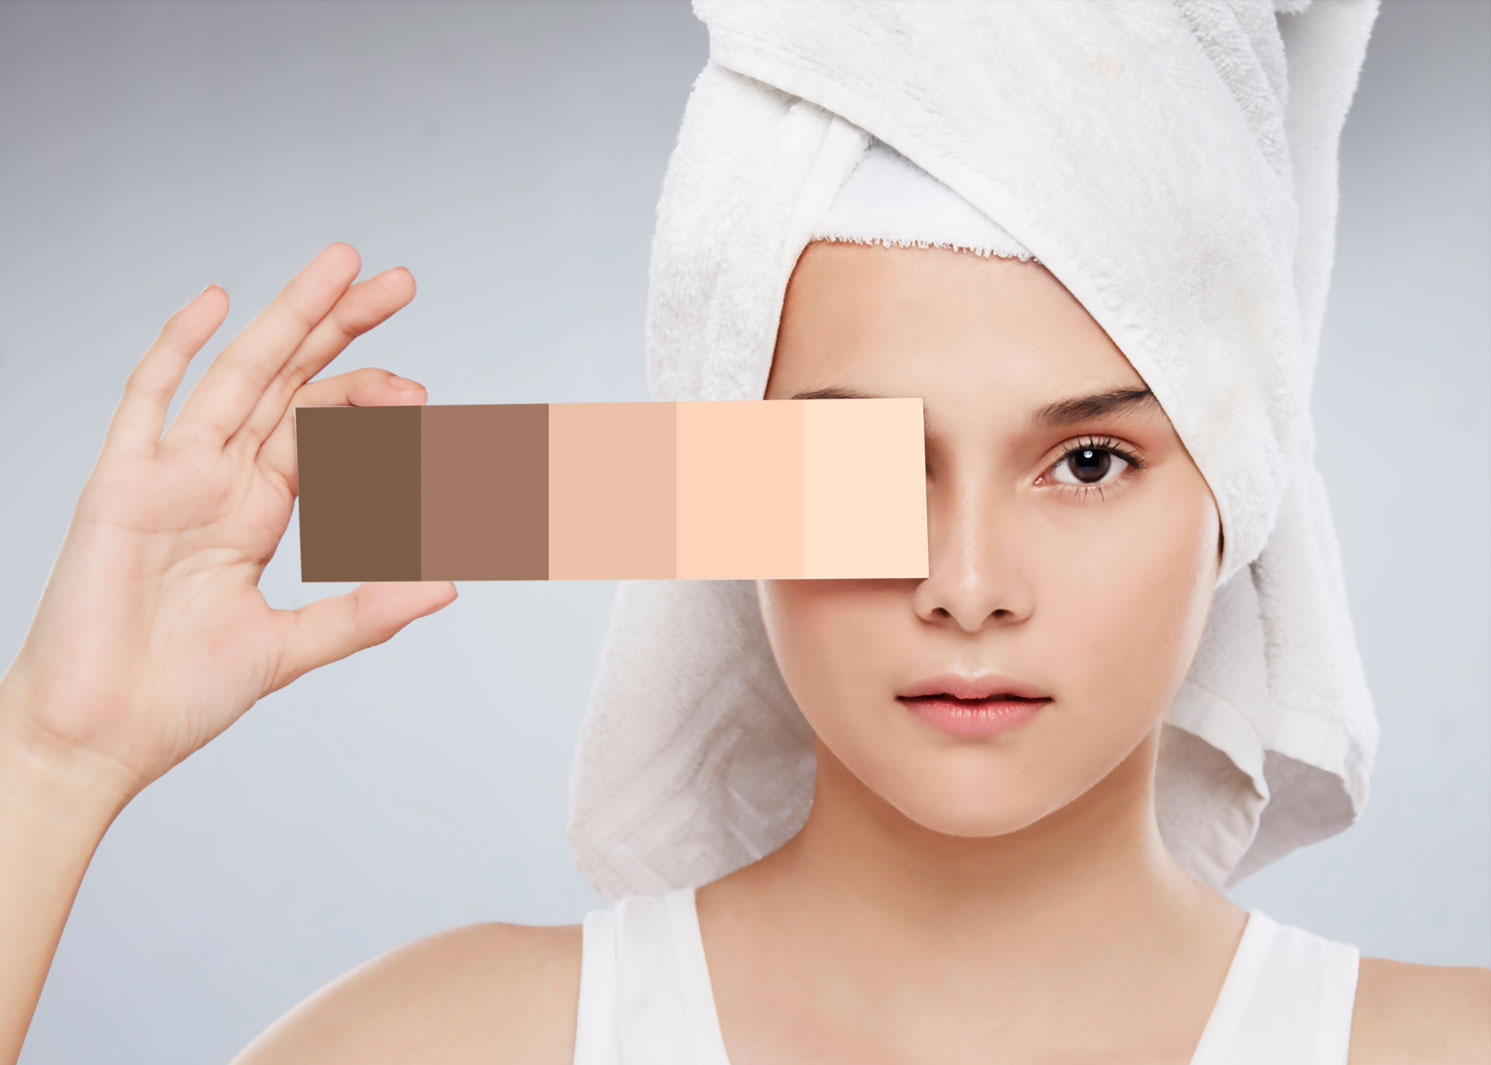 Skin Tone Range Photography